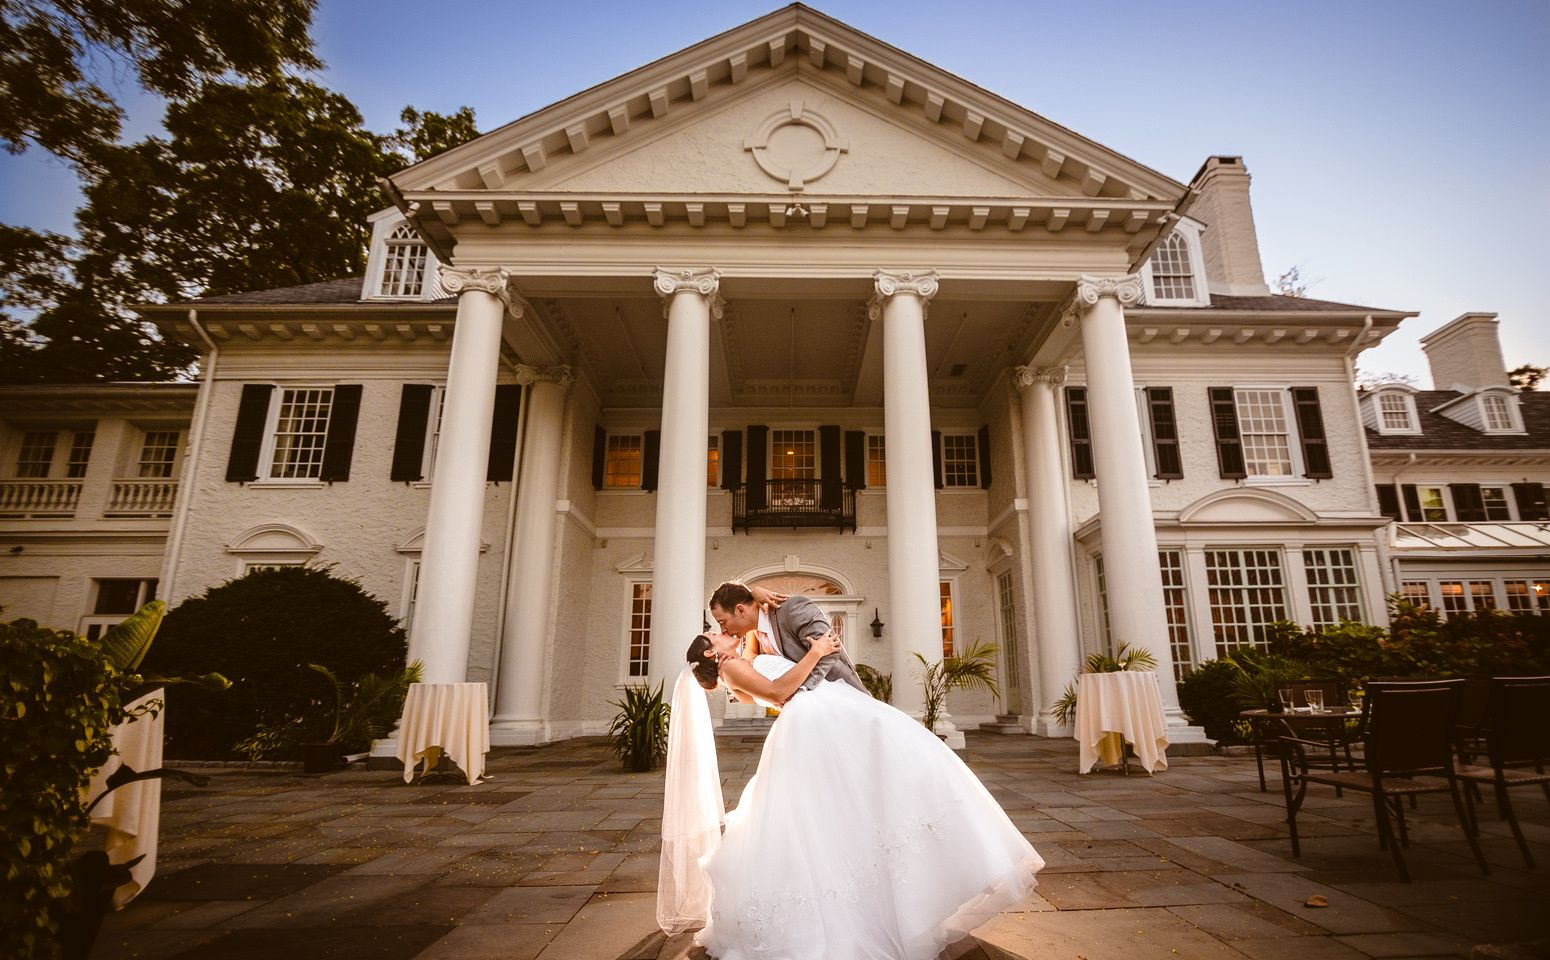 A beautiful wedding at radnor valley country club in villanova pa